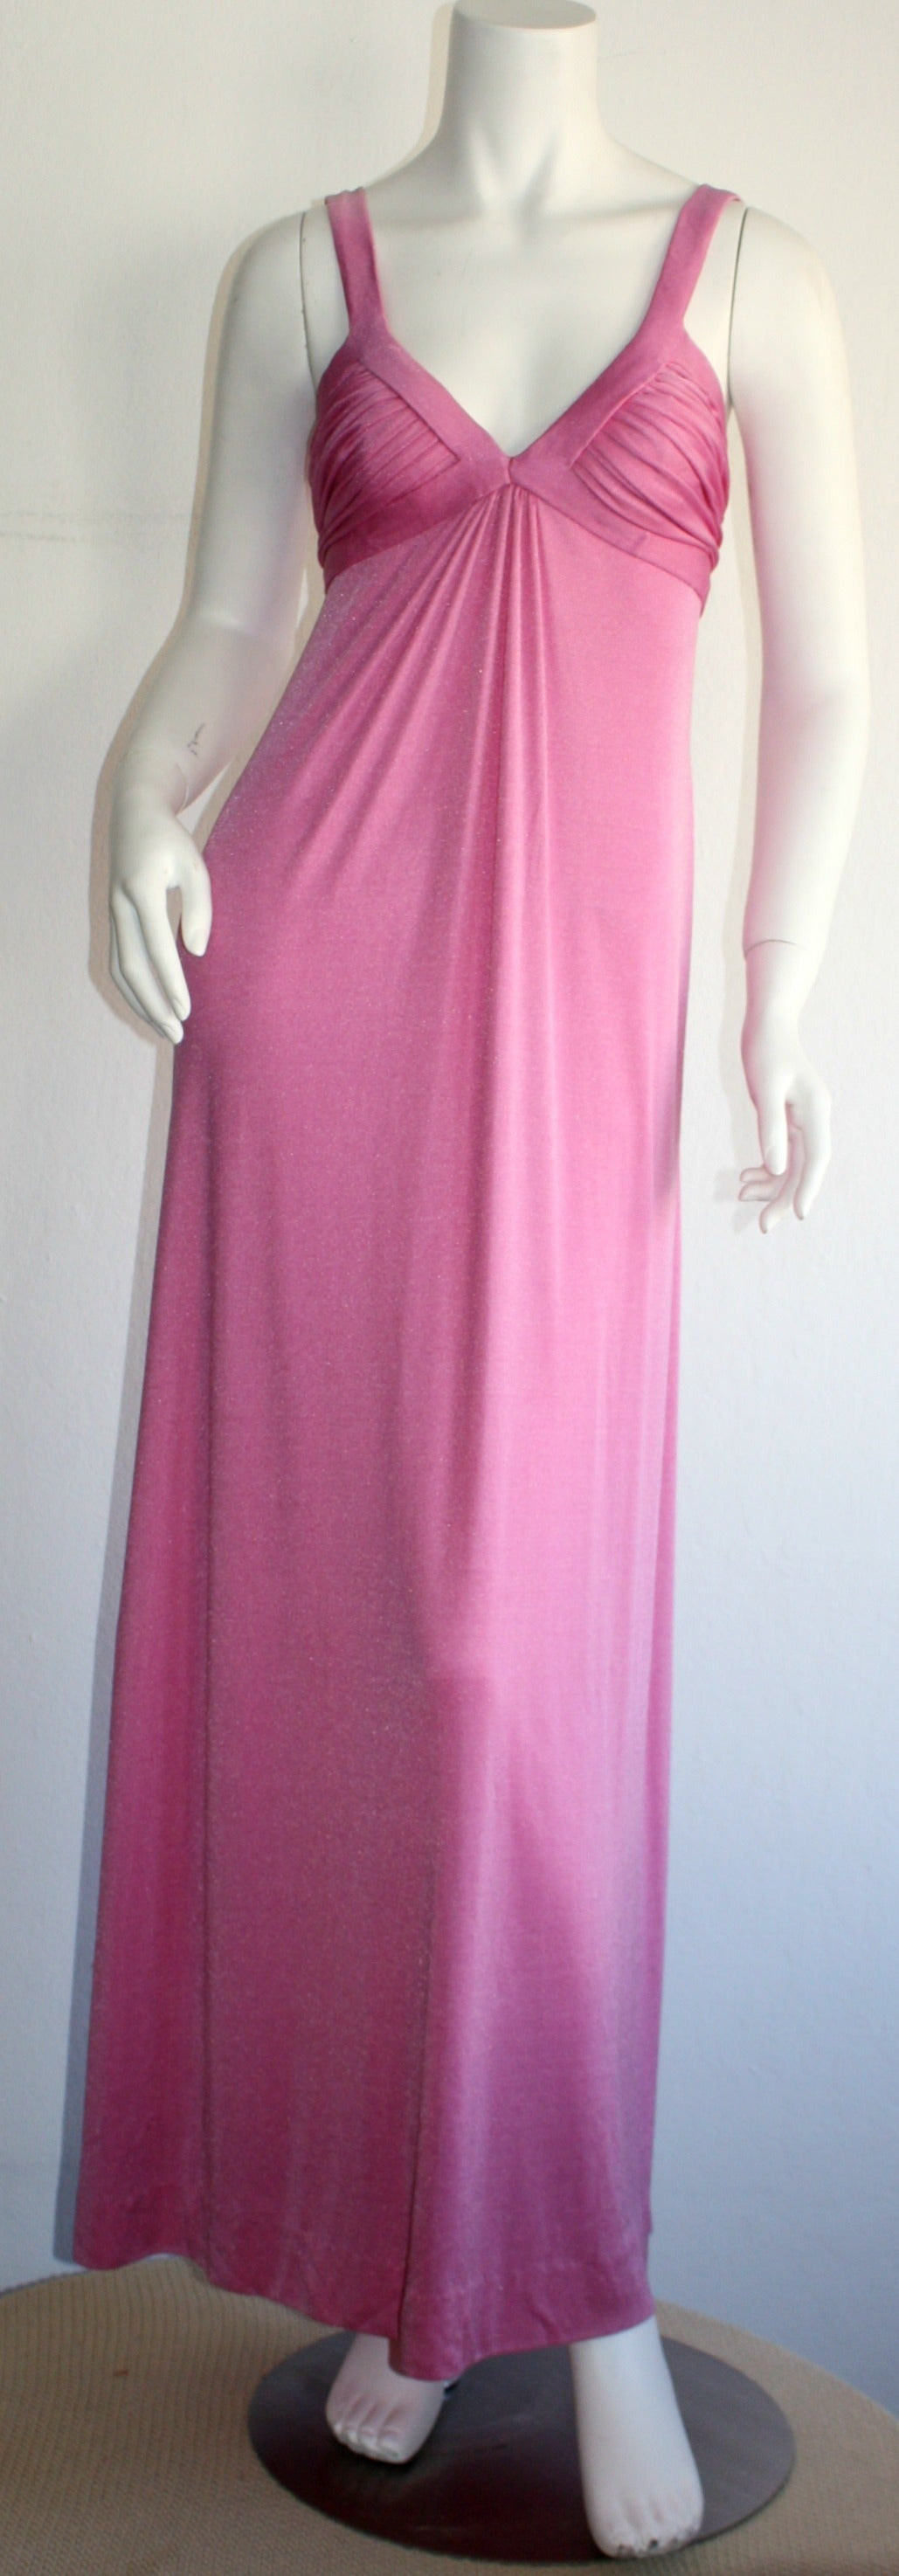 Loris Azzaro 1970s Silk Jersey Vintage Pink Empire Dress Gown In Excellent Condition For Sale In San Francisco, CA